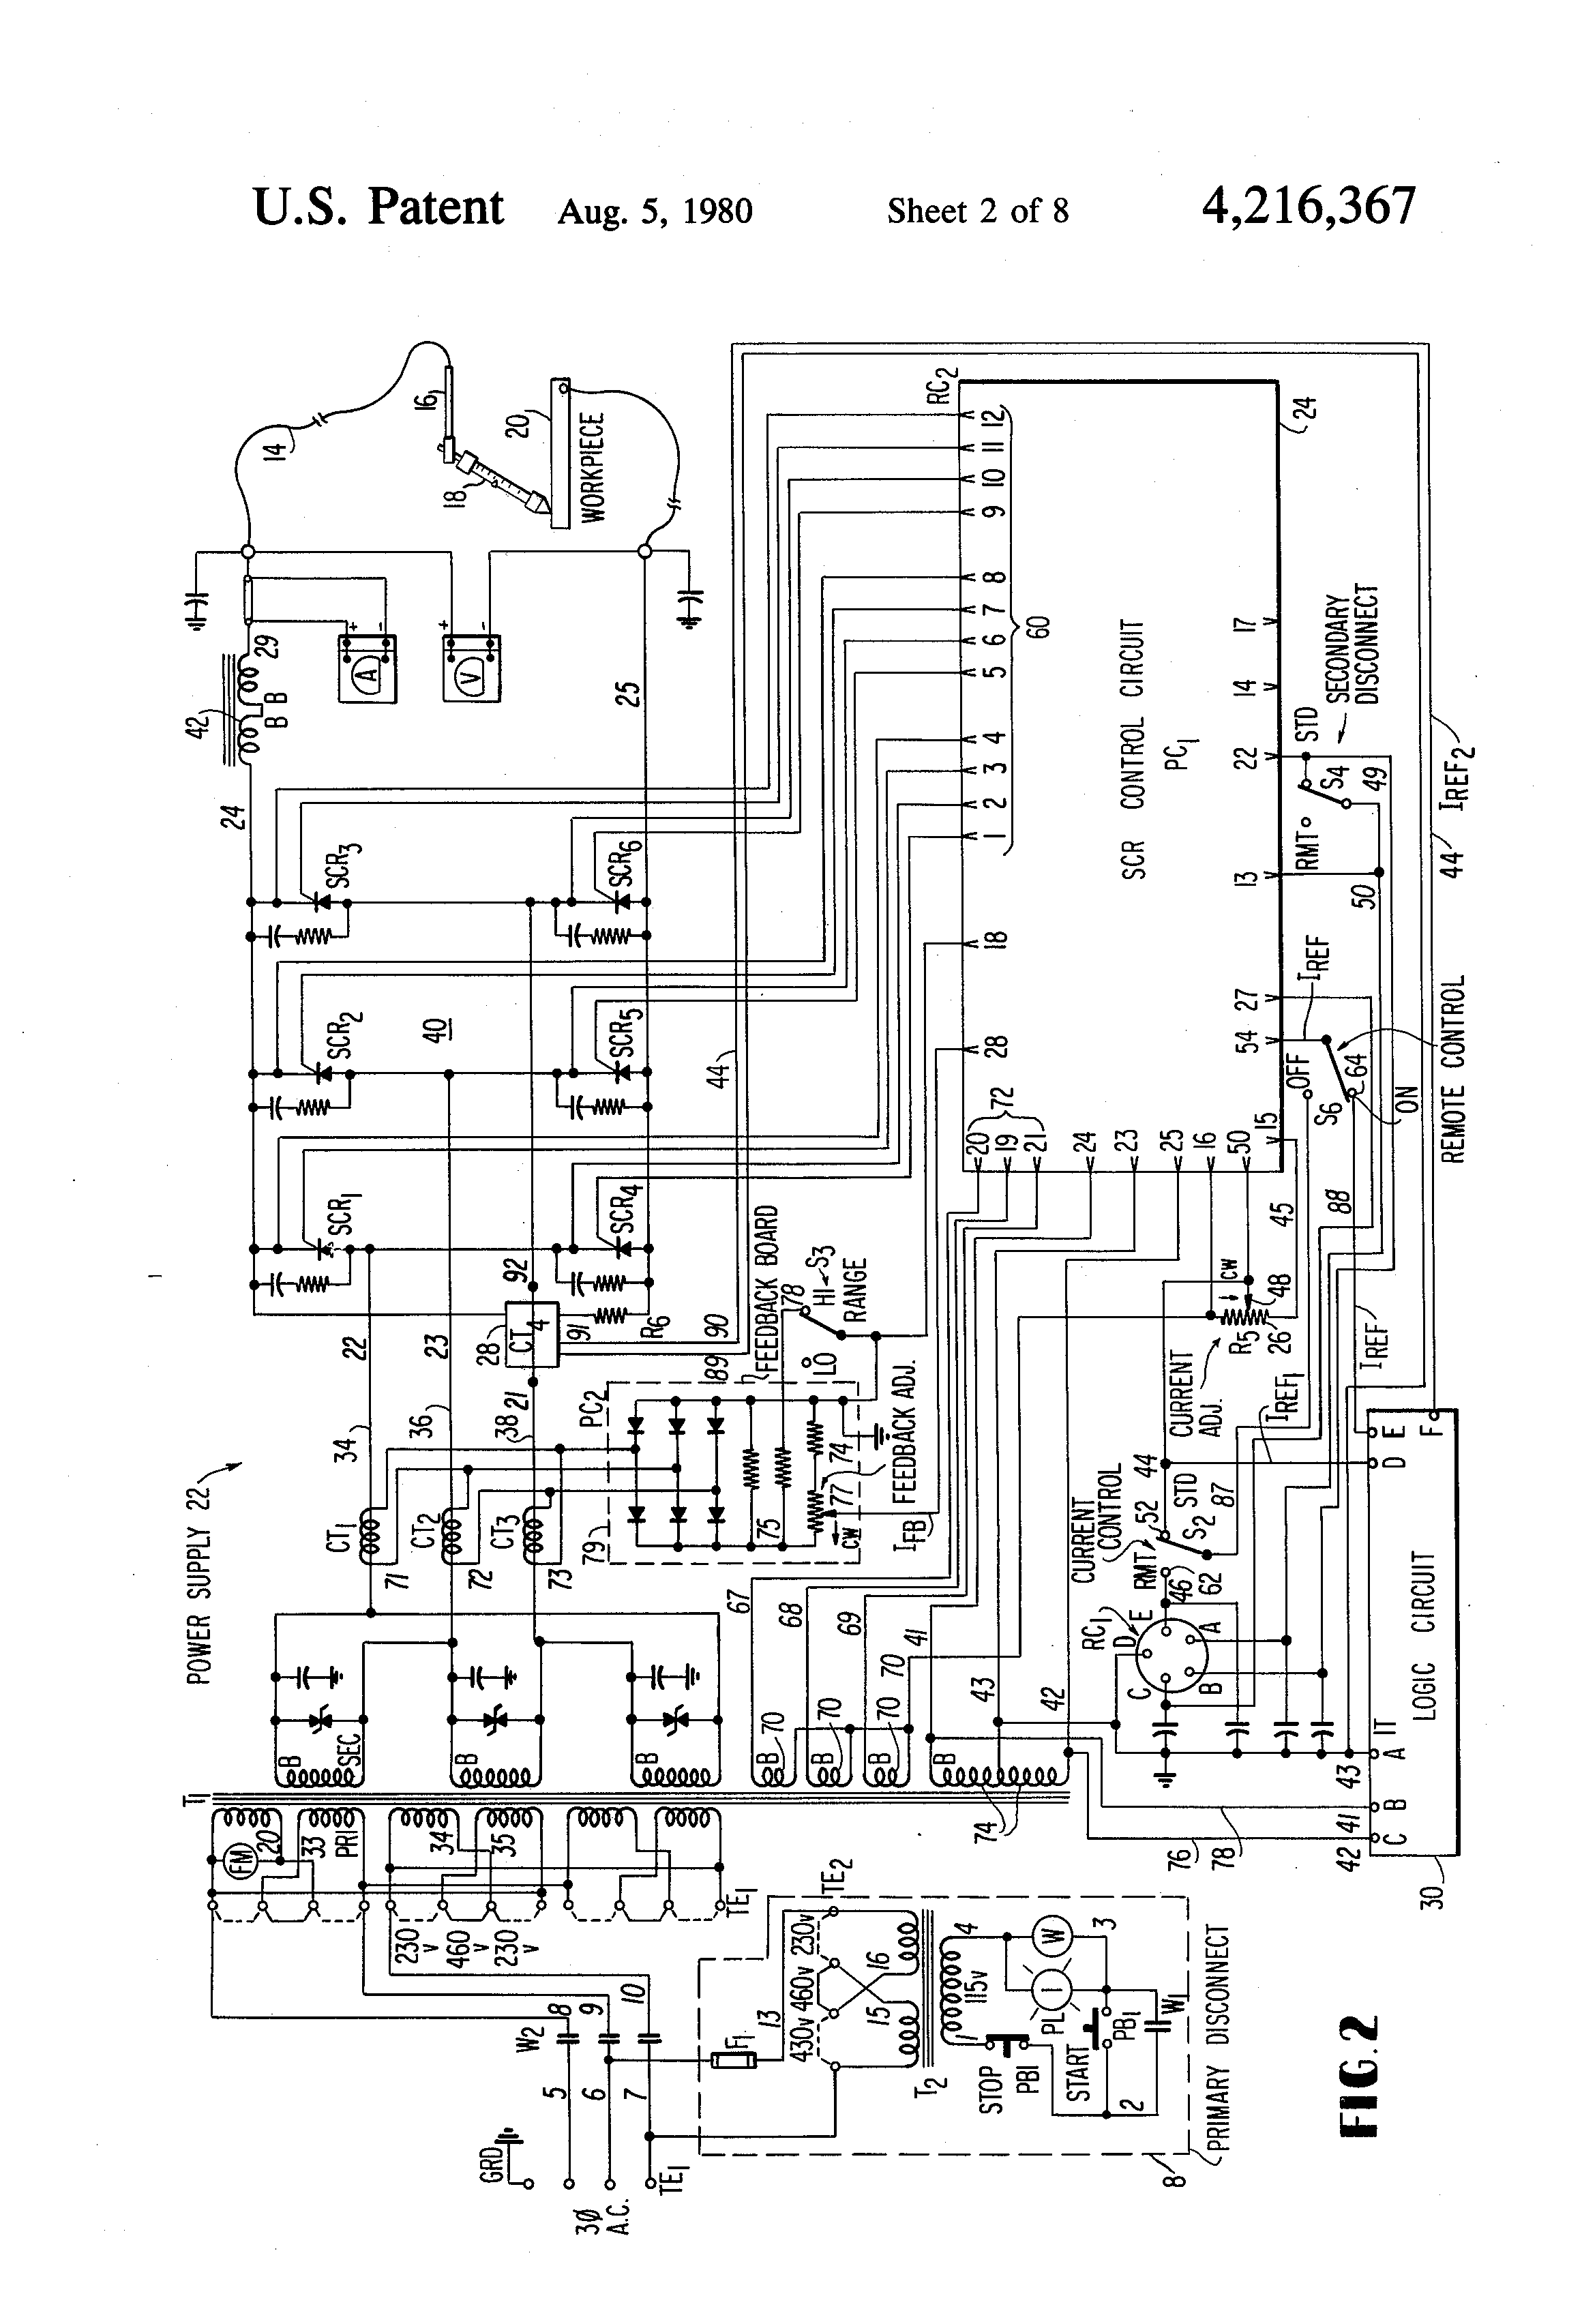 Junction Box Wiring Diagram For Extend Electrical Wire In Manual Guide